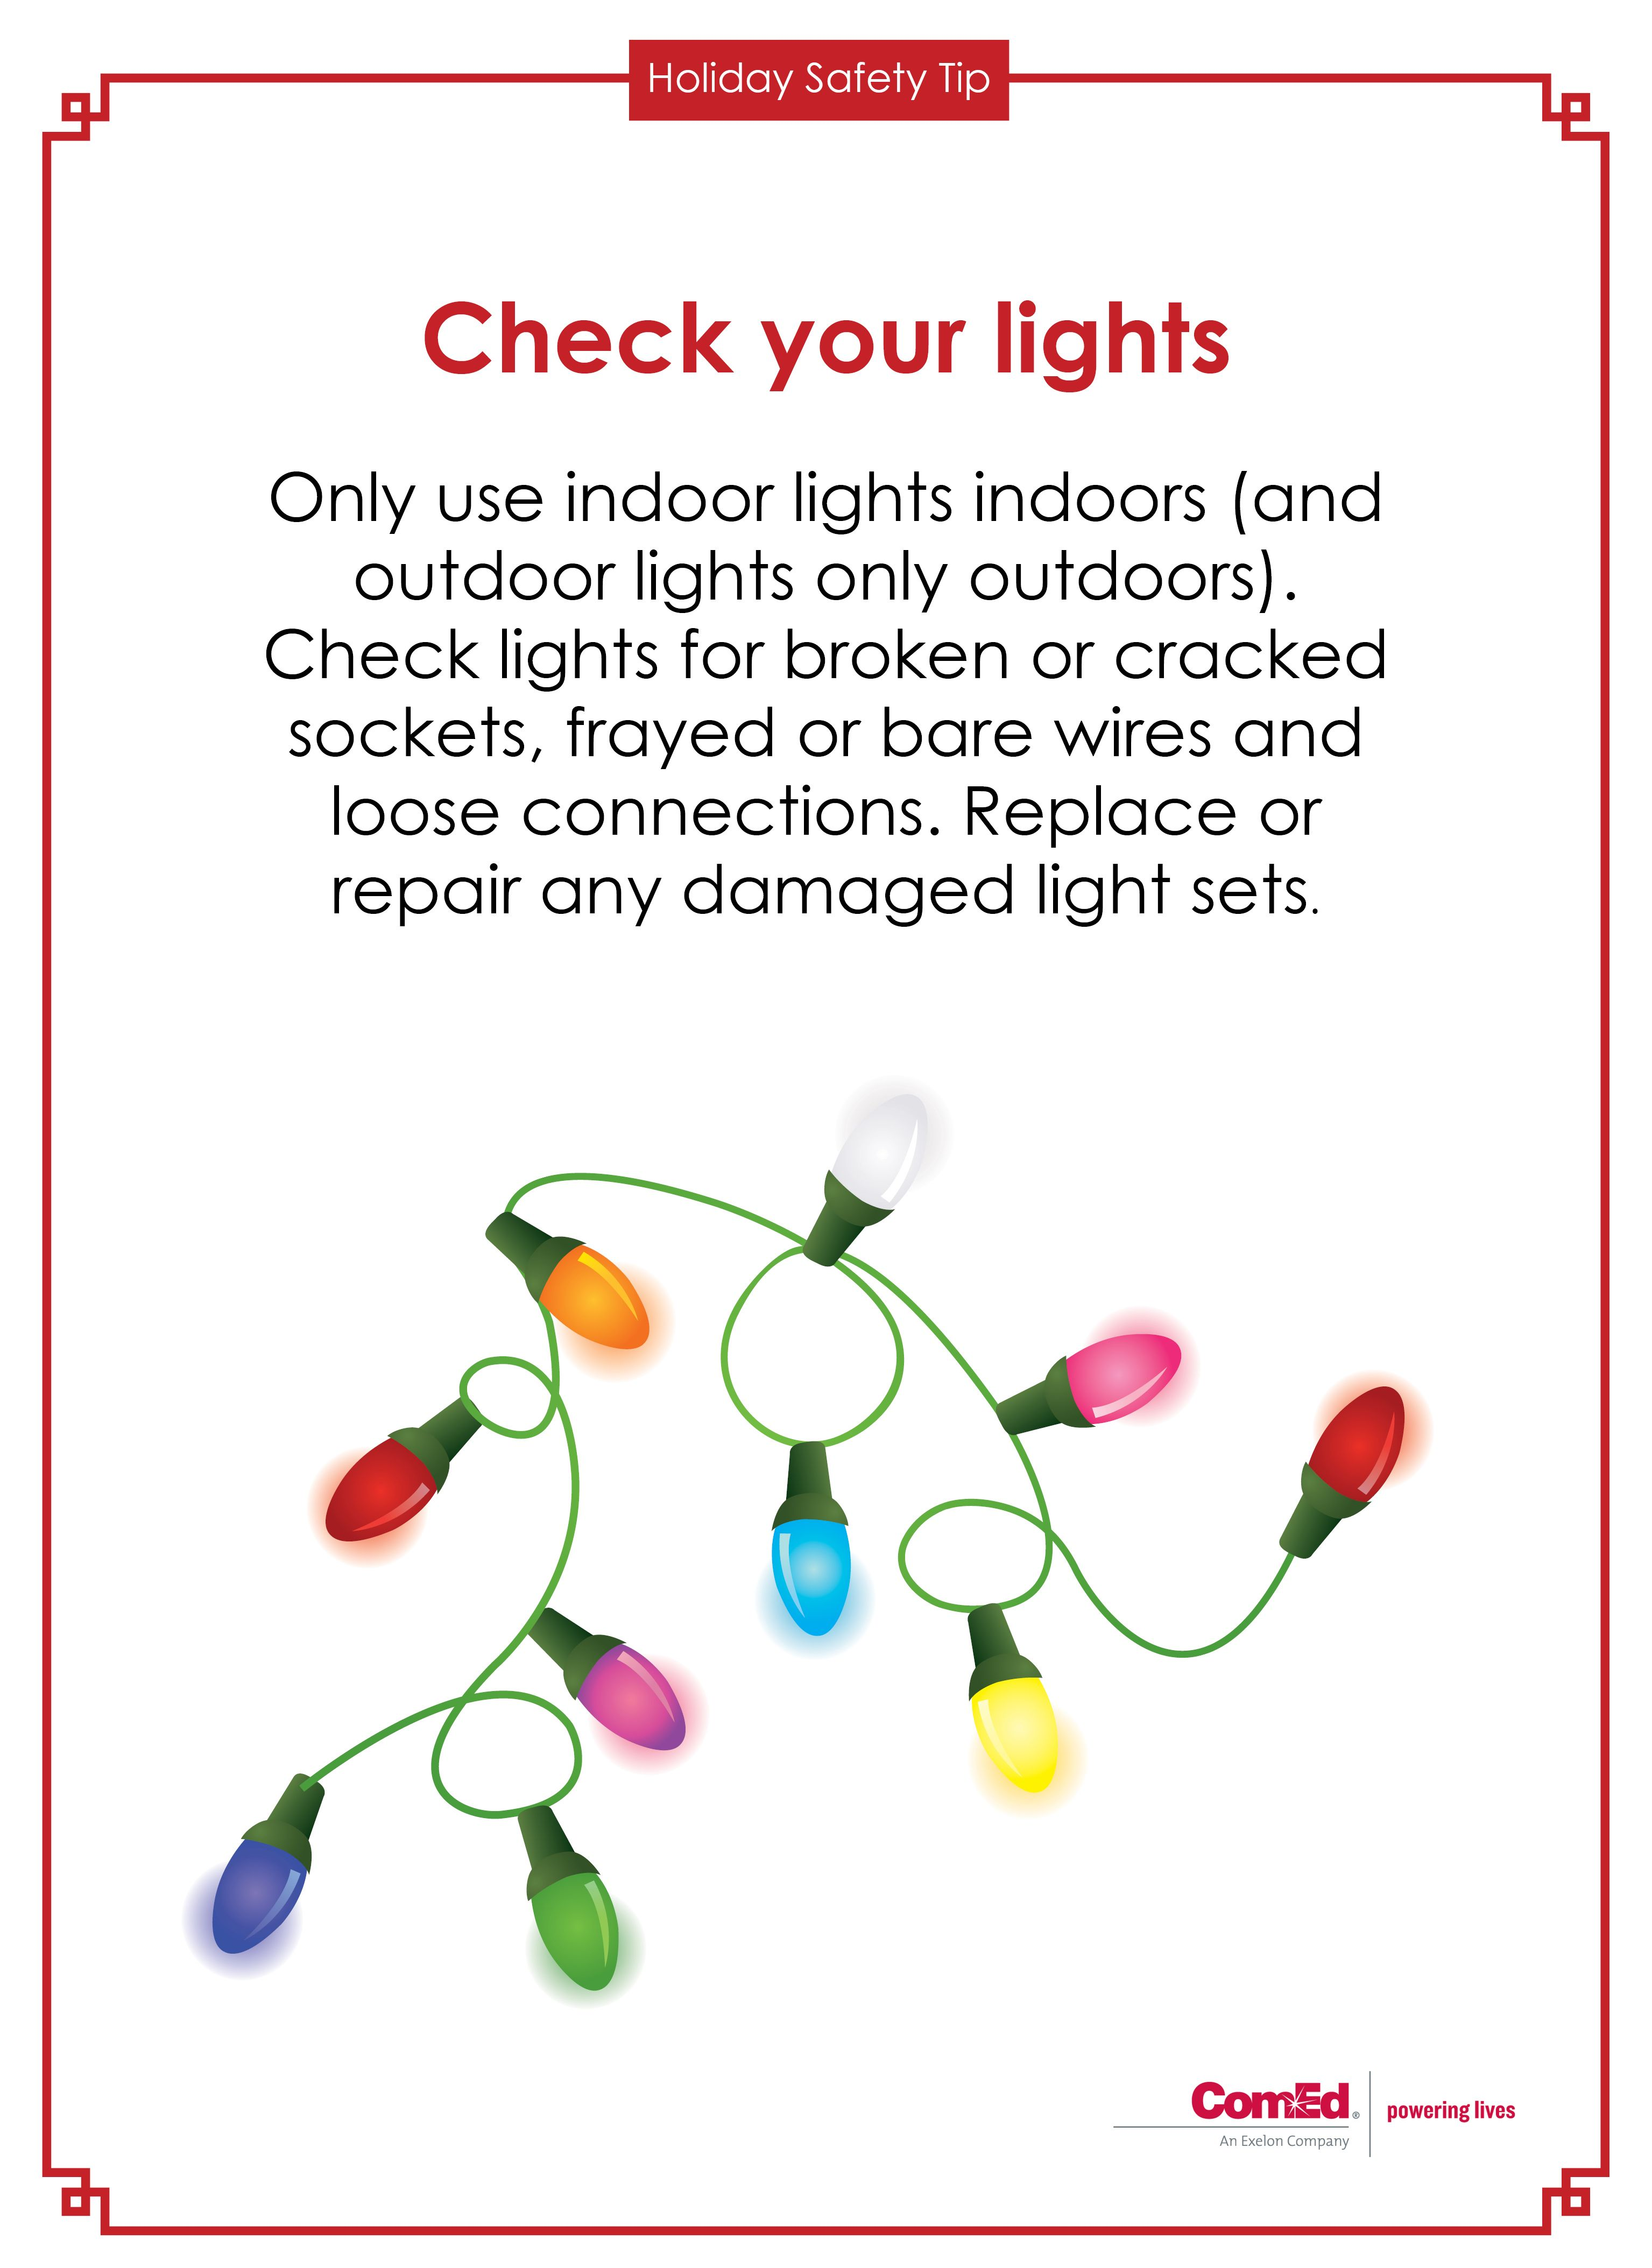 holiday safety tip before hanging up your holiday lights this year